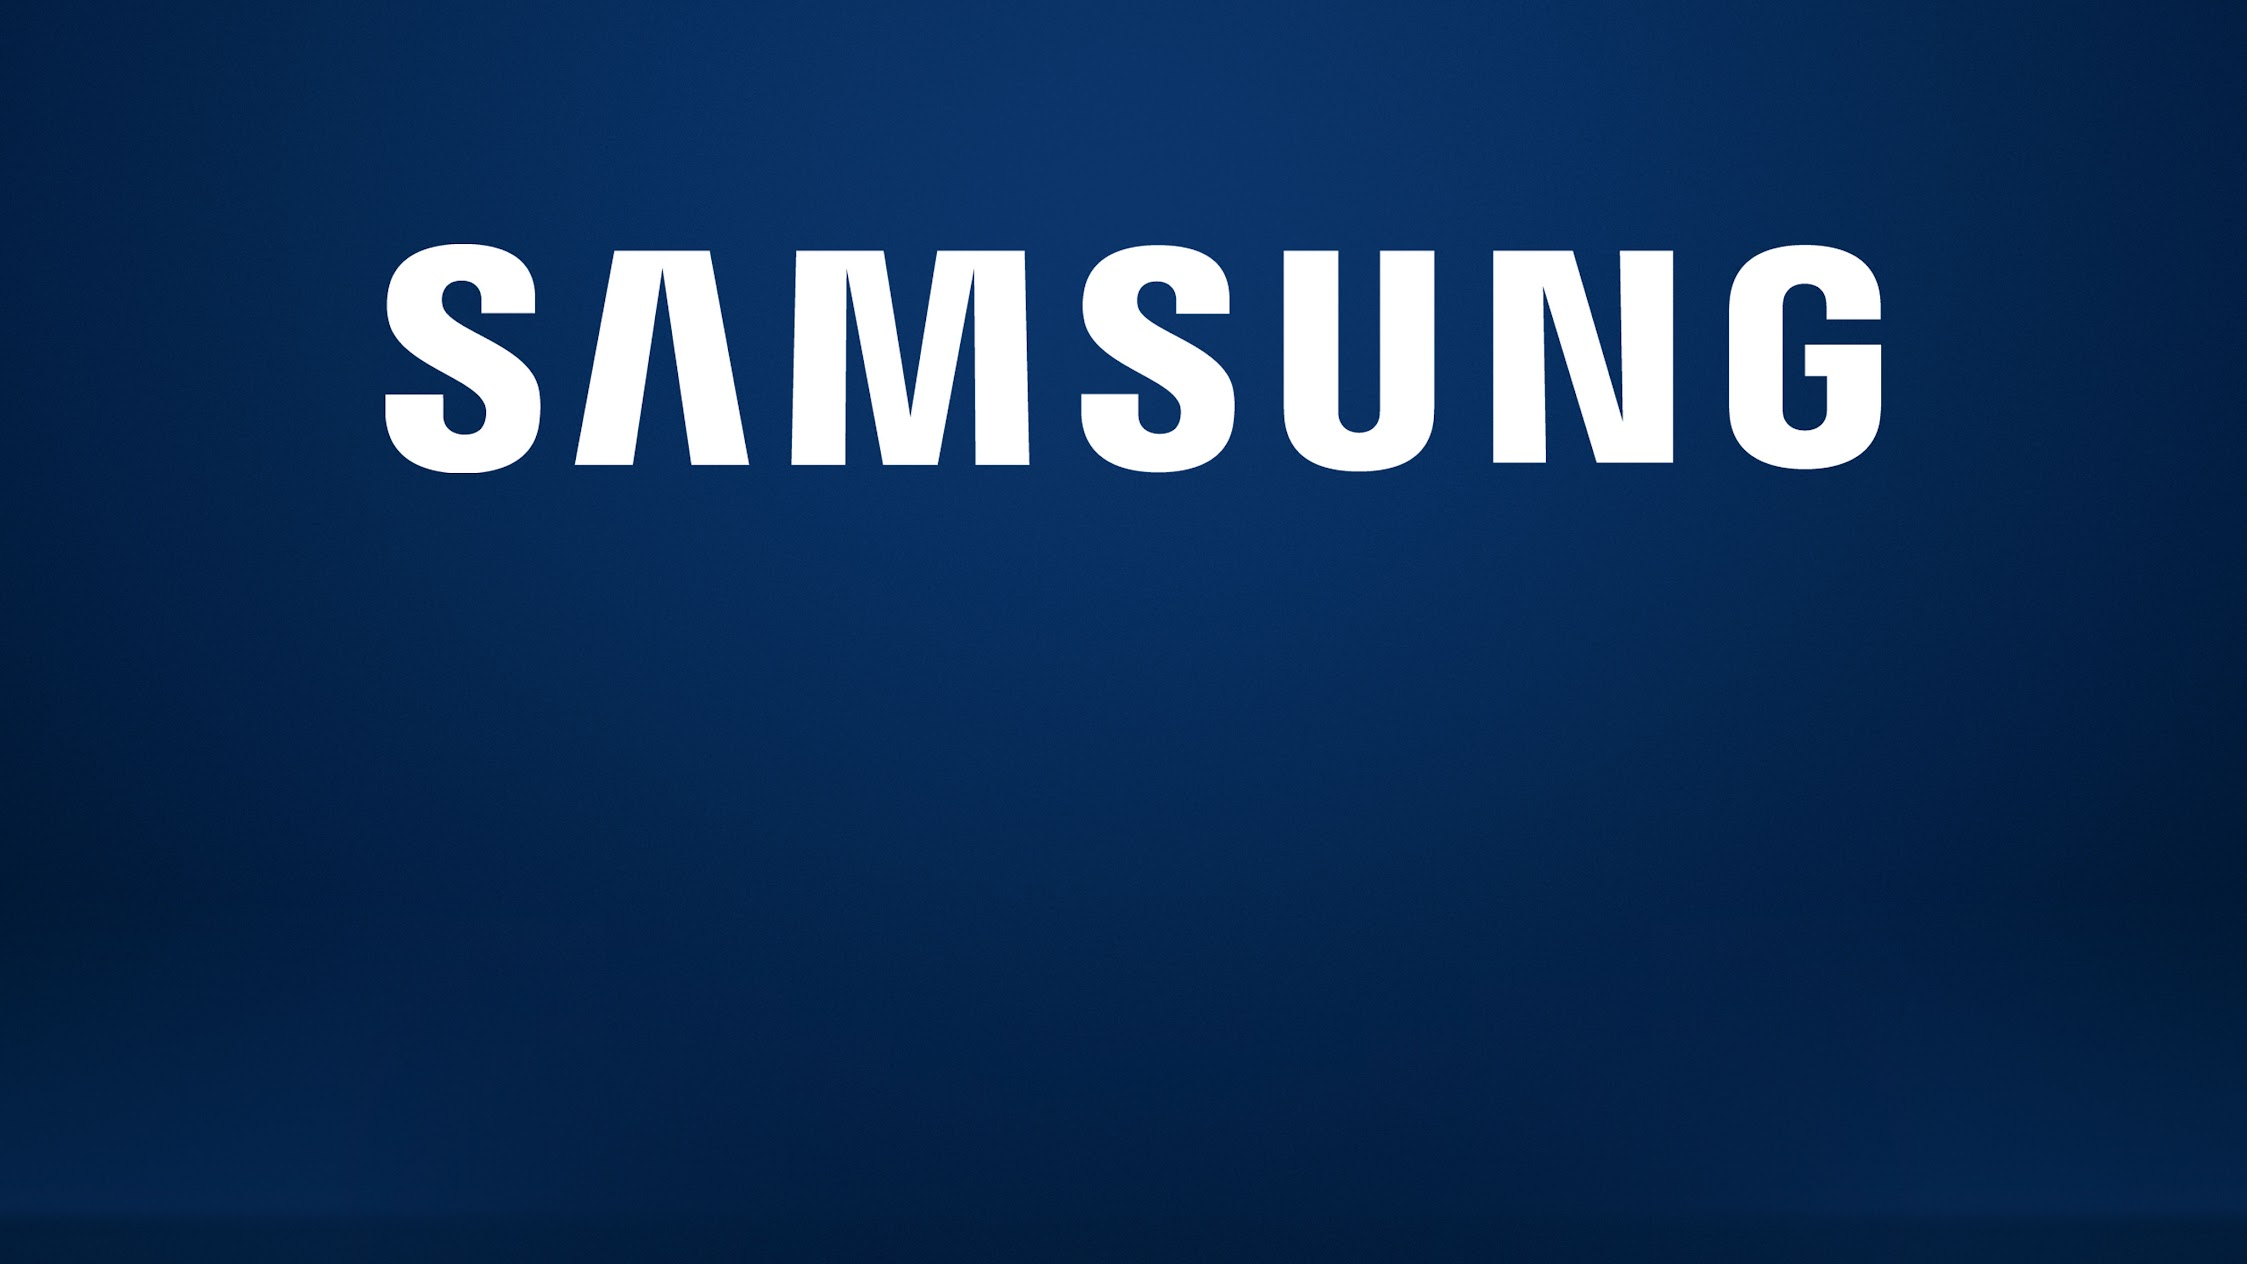 Samsung Electronics Co. Ltd